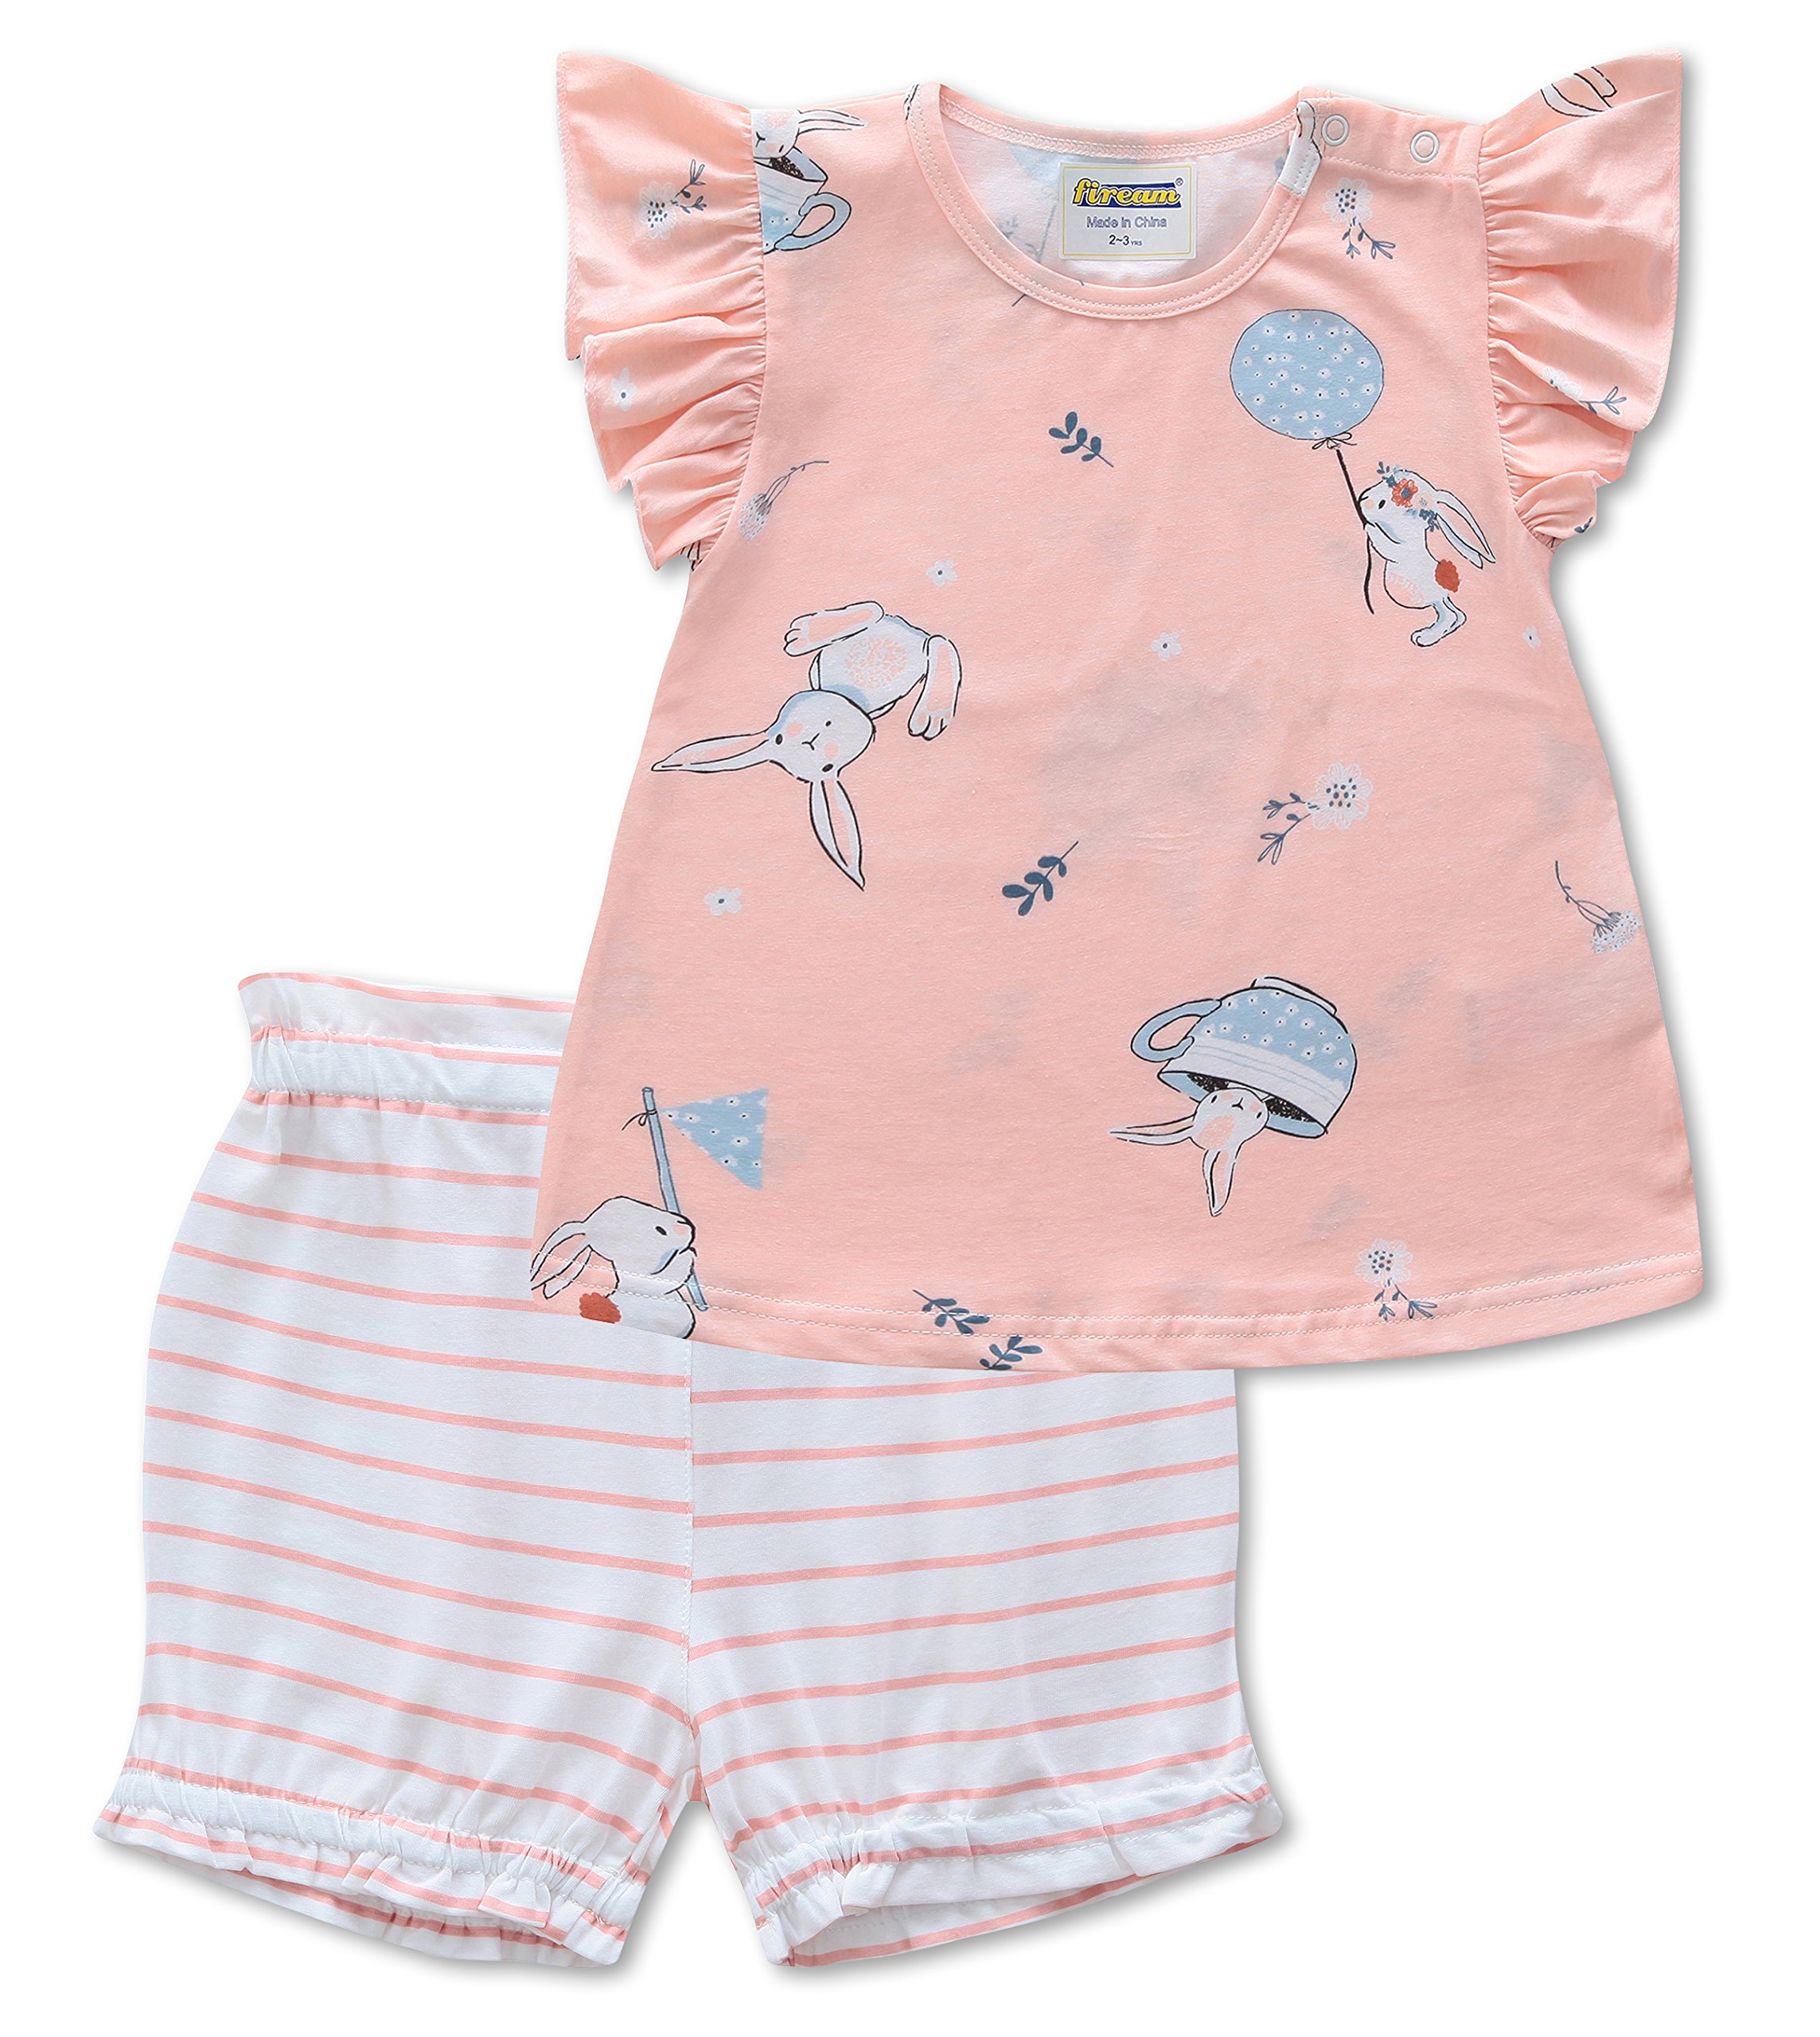 Fiream Baby Girl Outfits Cotton Cute Short Sleeve Clothing Set(185003,2-3YRS)